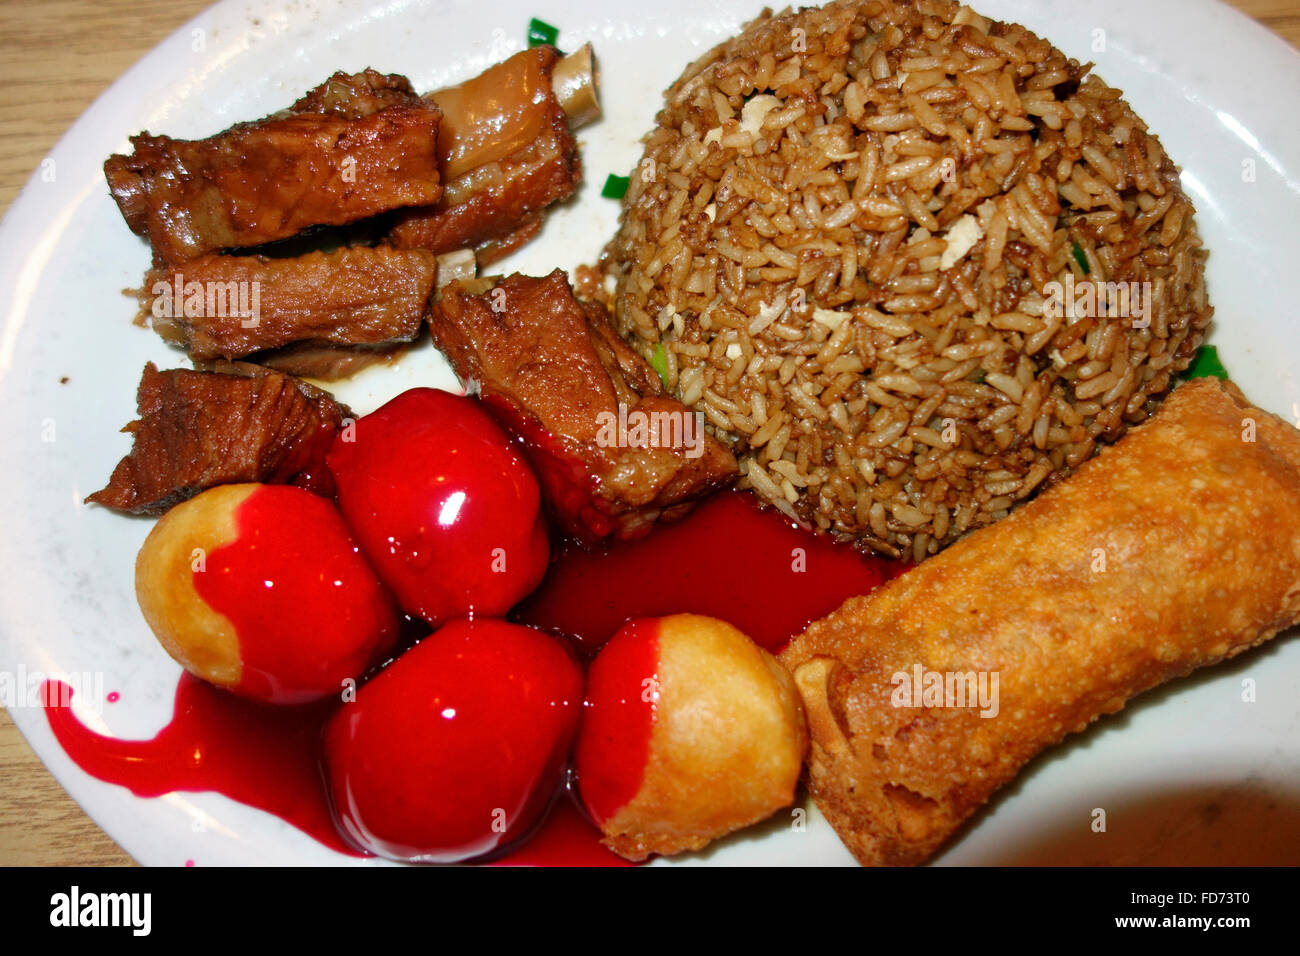 Chinese Food Menu Stockfotos & Chinese Food Menu Bilder - Alamy